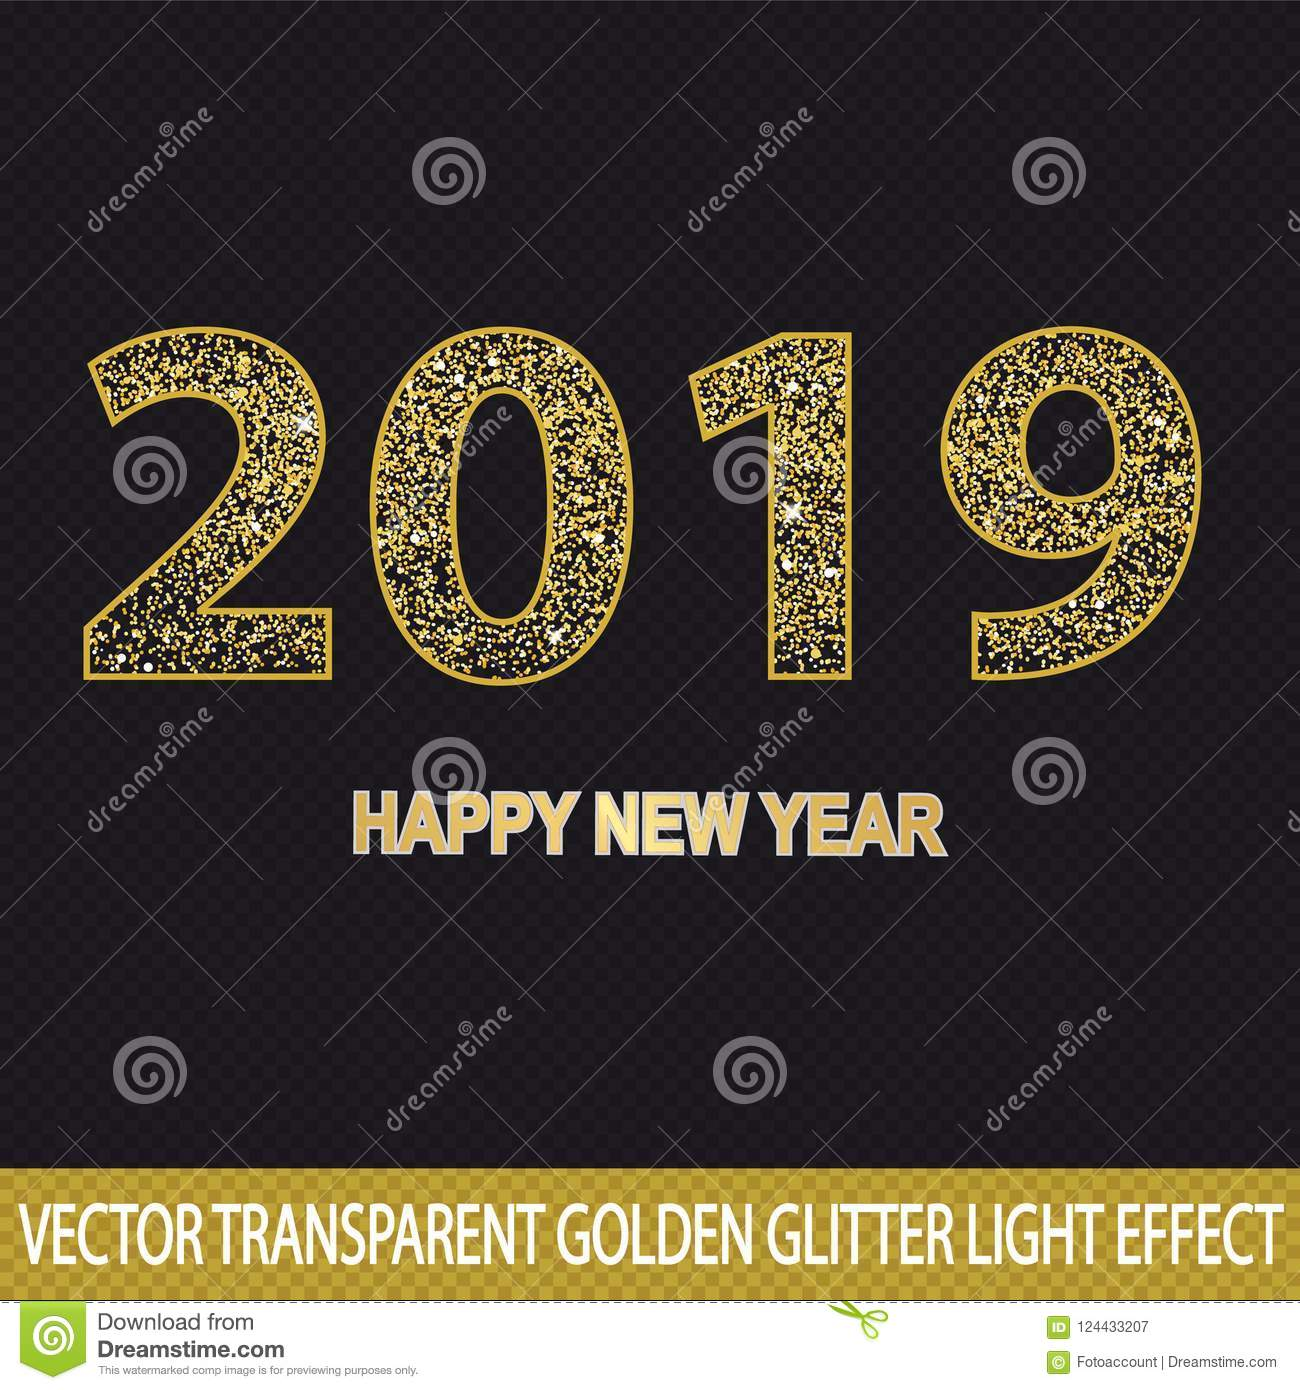 golden glitter number 2019 happy new year vector light effect transparent background